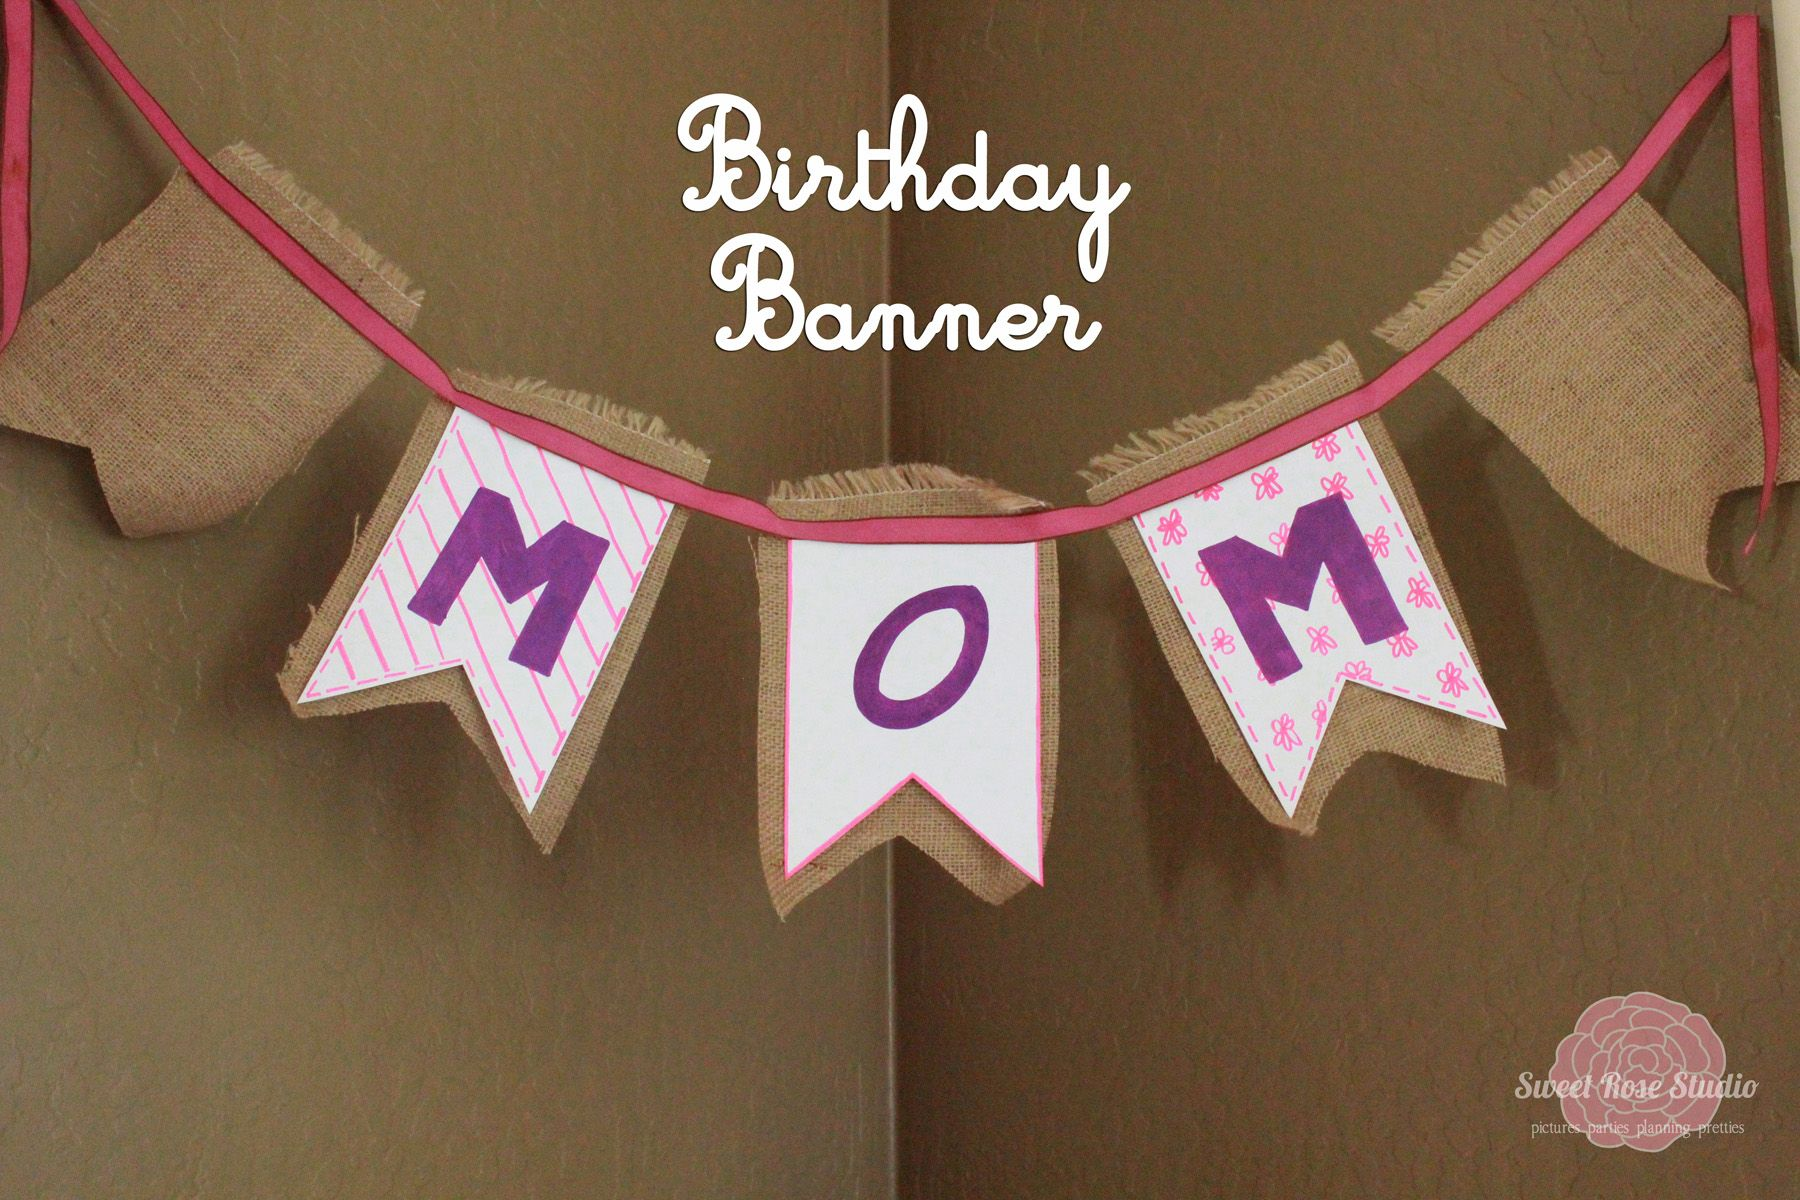 Re-Usable Birthday Banner from Sweet Rose Studio #ExpressYourself #DIY